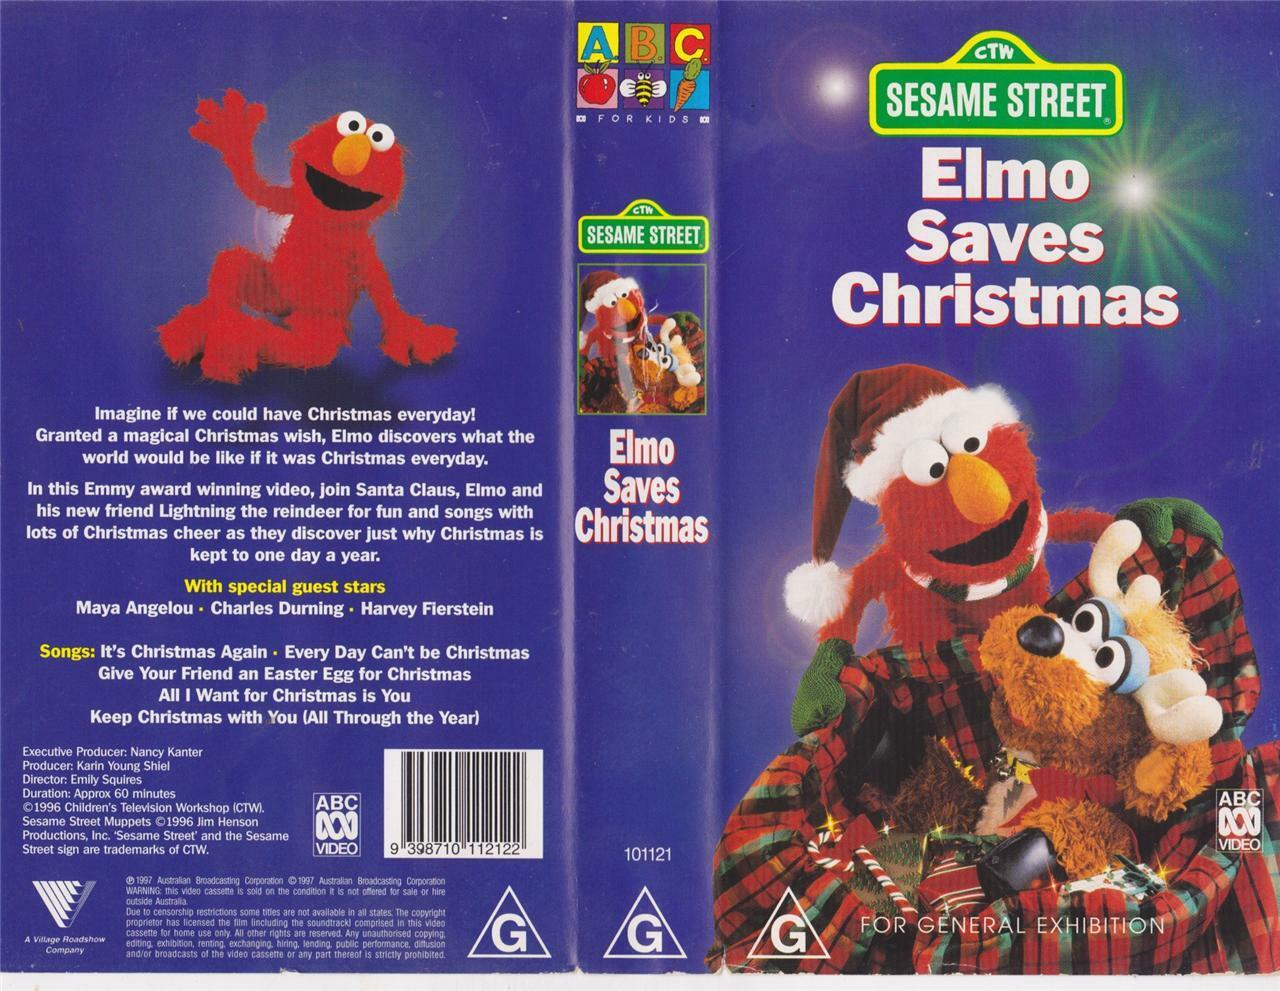 Elmo Saves Christmas/Gallery